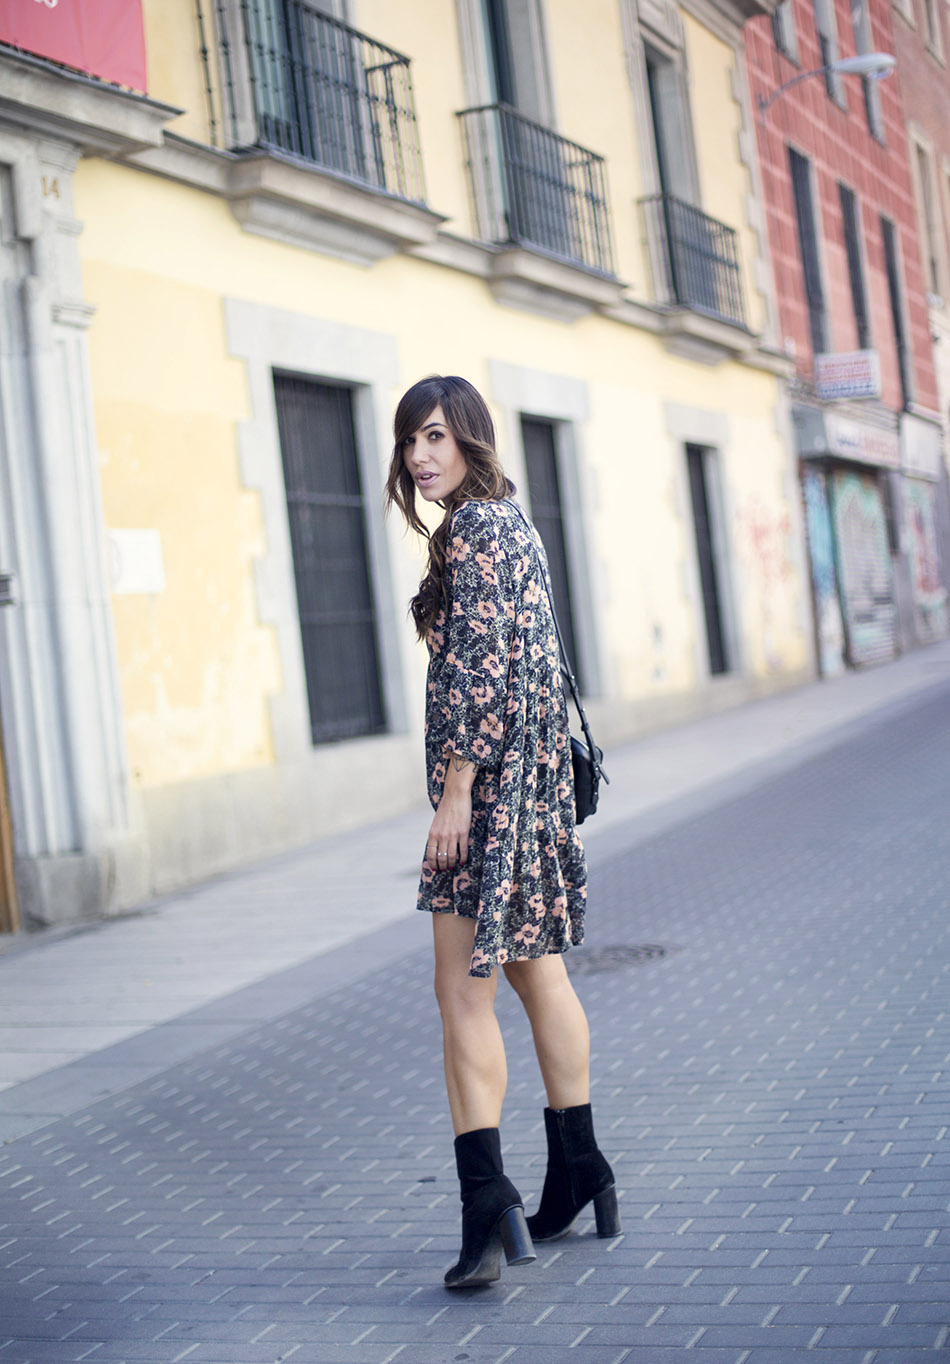 street-style-october-2016-outfits-review-barbara-crespo-05